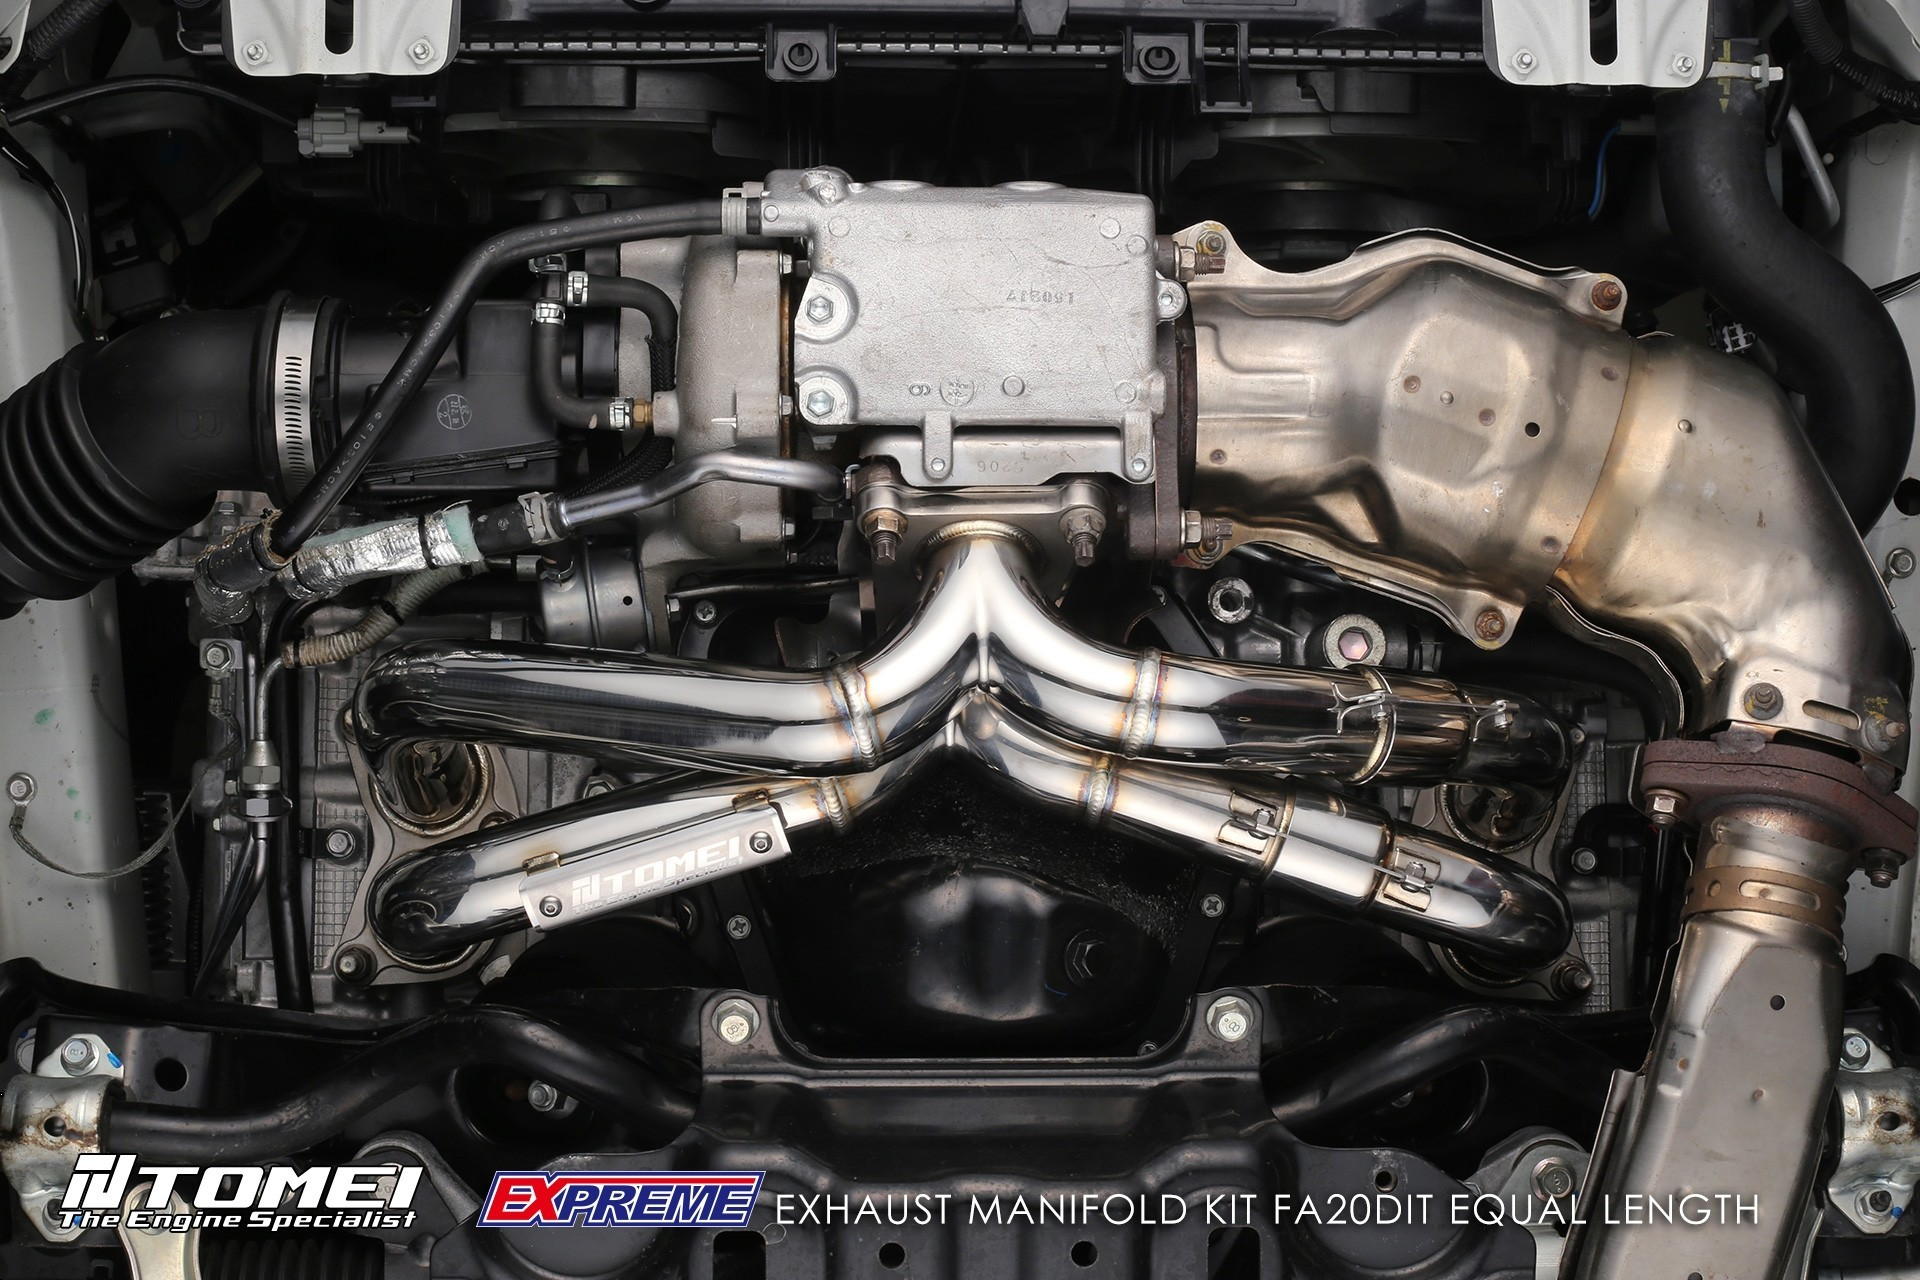 Tomei Expreme Equal Length Exhaust Manifold Kit